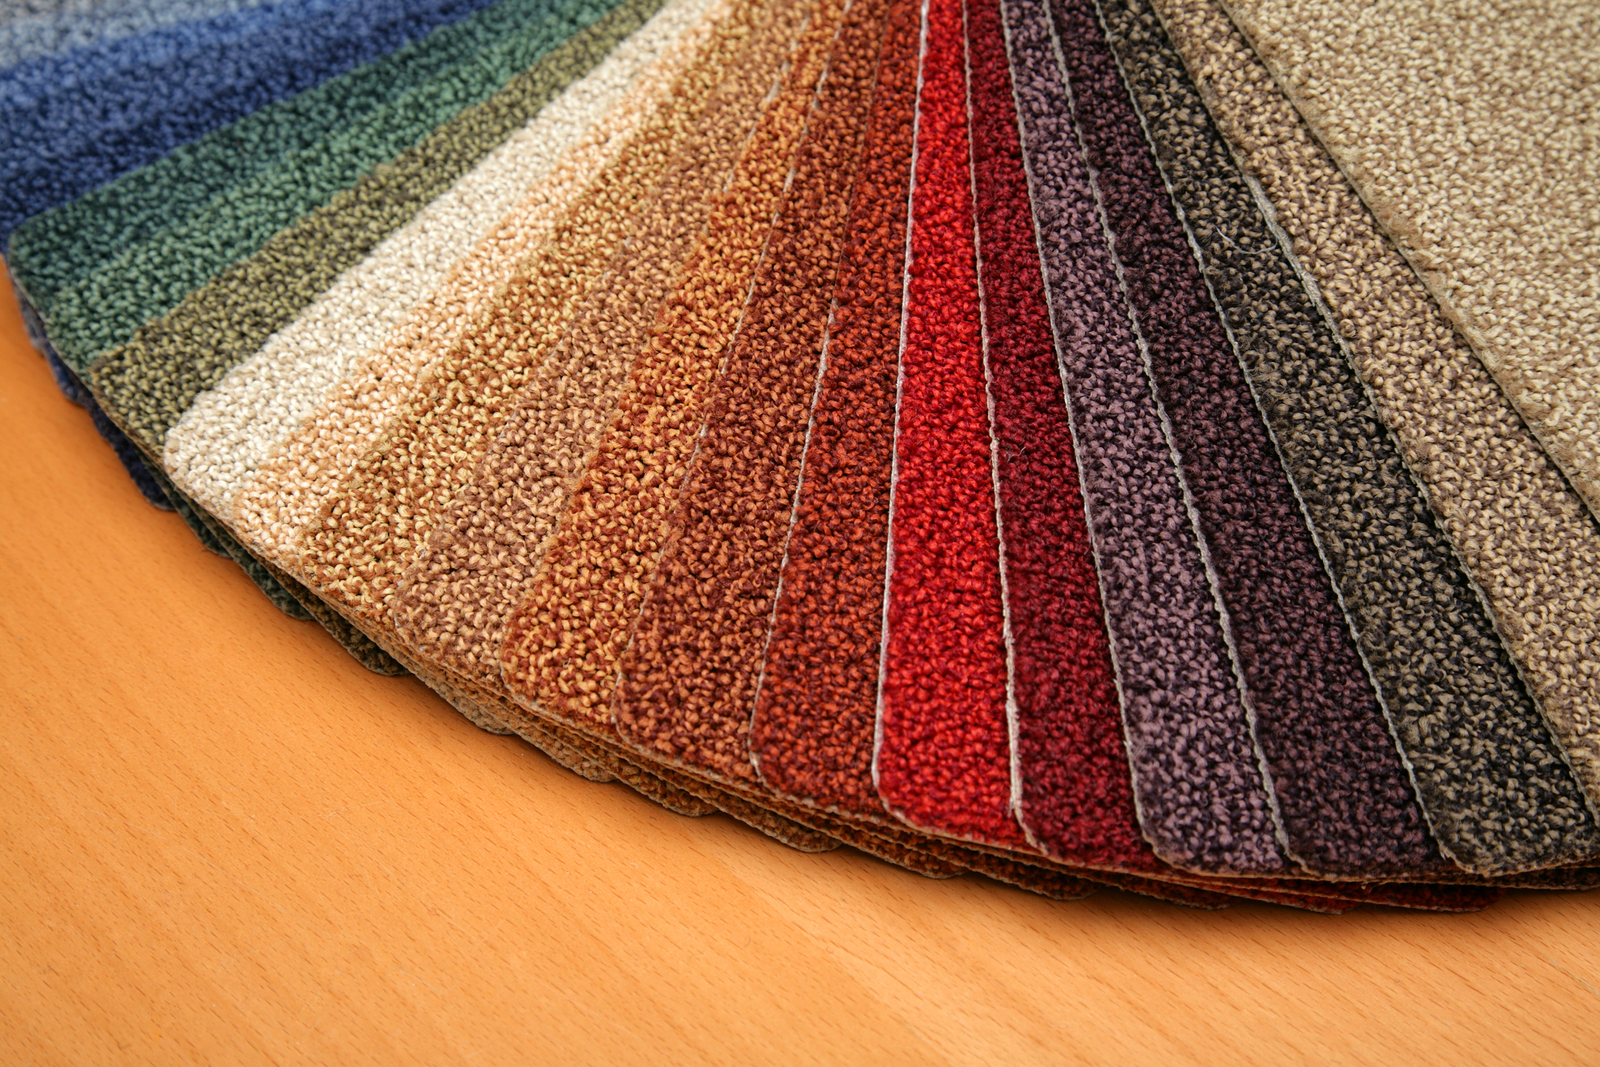 Dr House Cleaning: Different Types Of Carpets - Part 4